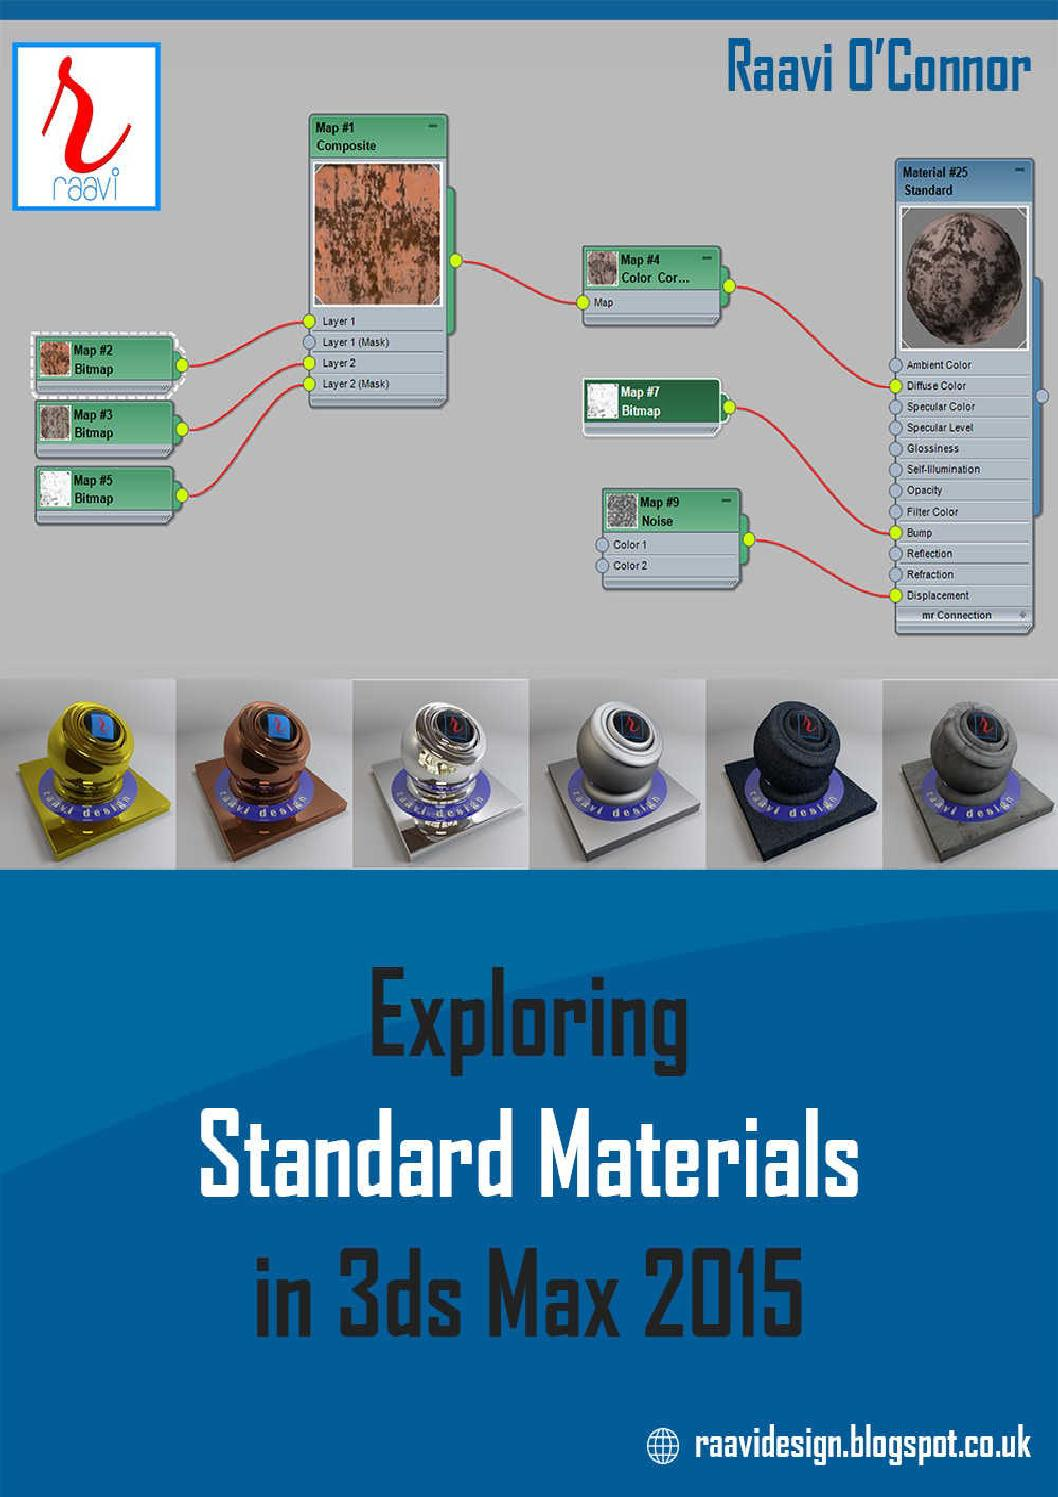 Exploring Standard Materials in 3ds Max 2015 by Olcay Seyyar